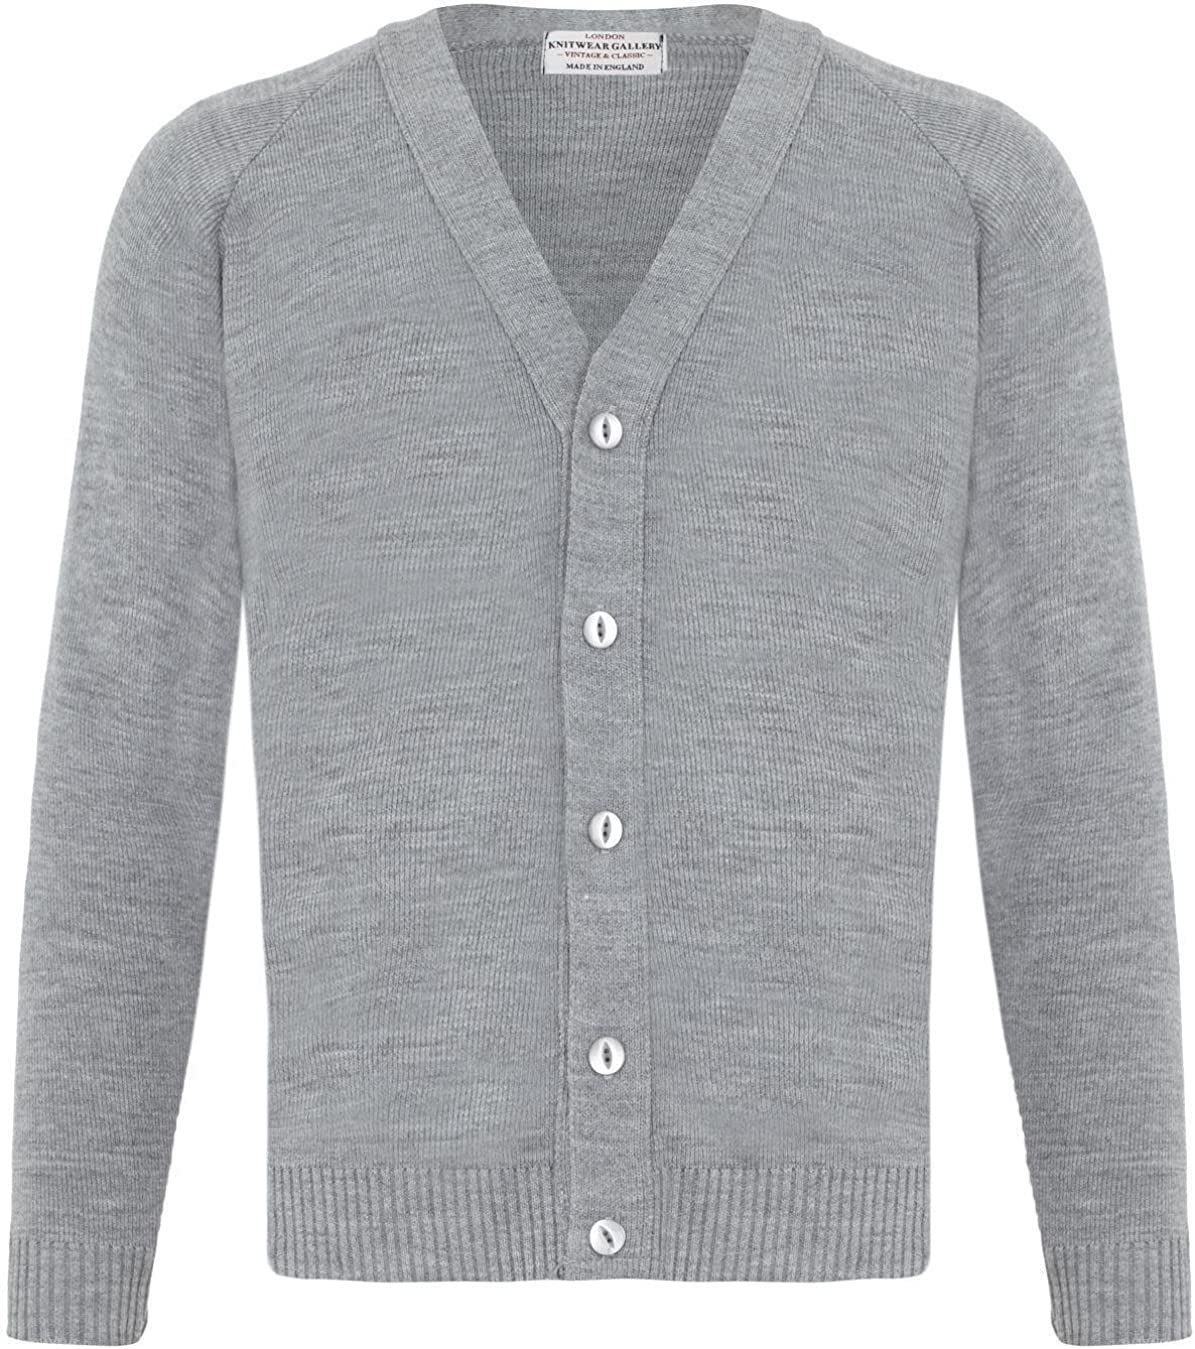 London Knitwear Gallery Mens Knitwear Casual Button Cardigan Vintage